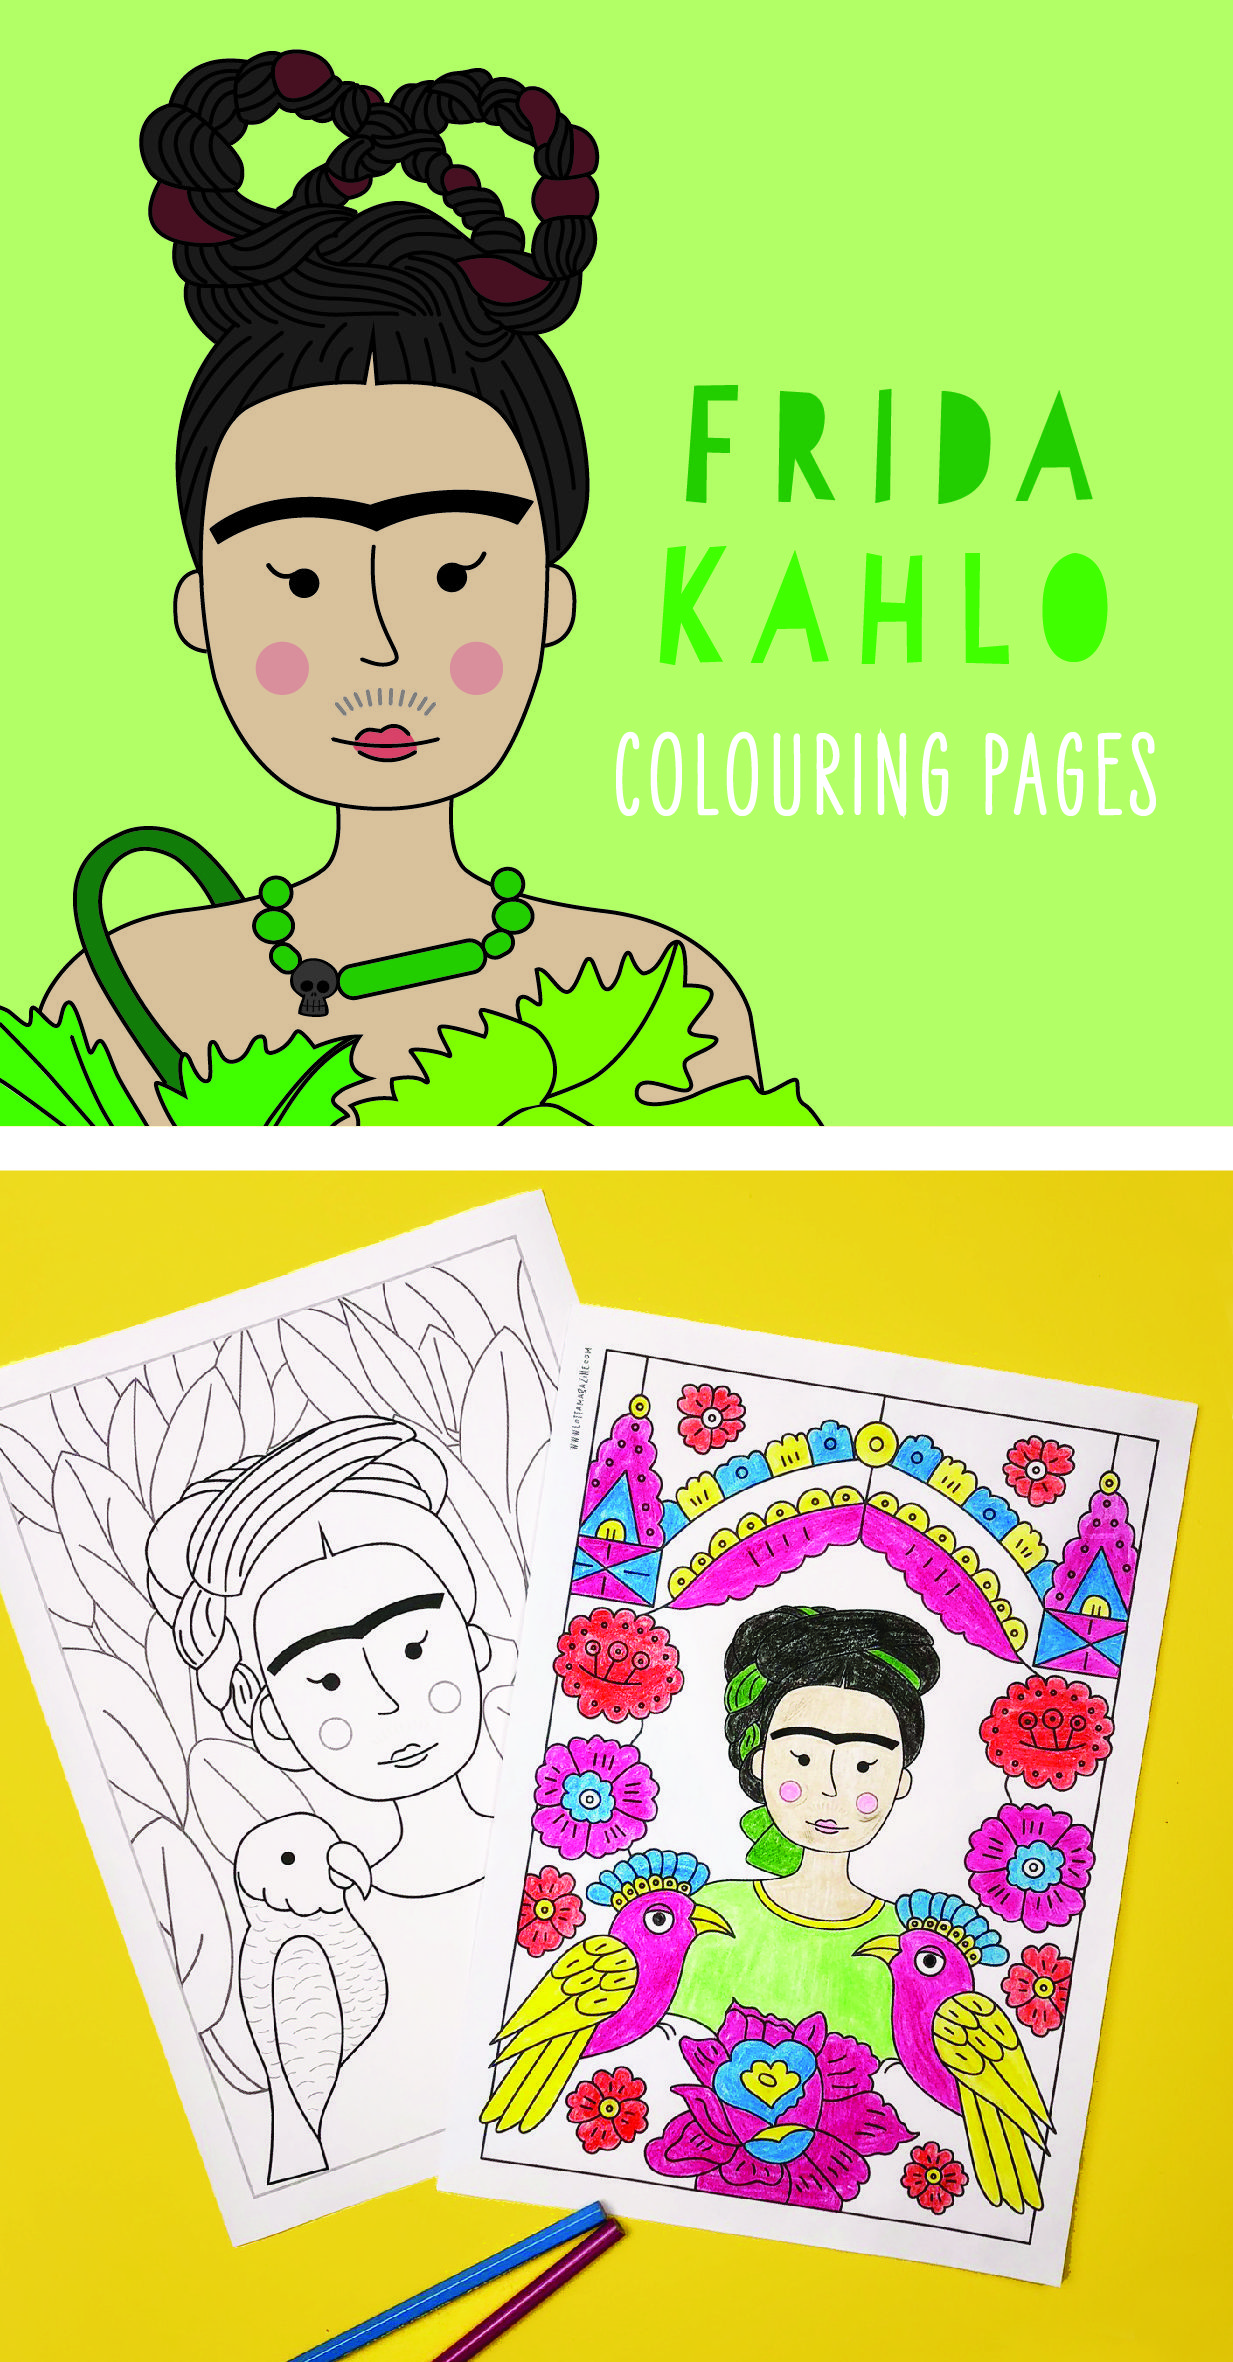 Frida Kahlo coloring pages for kids. They recreate her famous ...